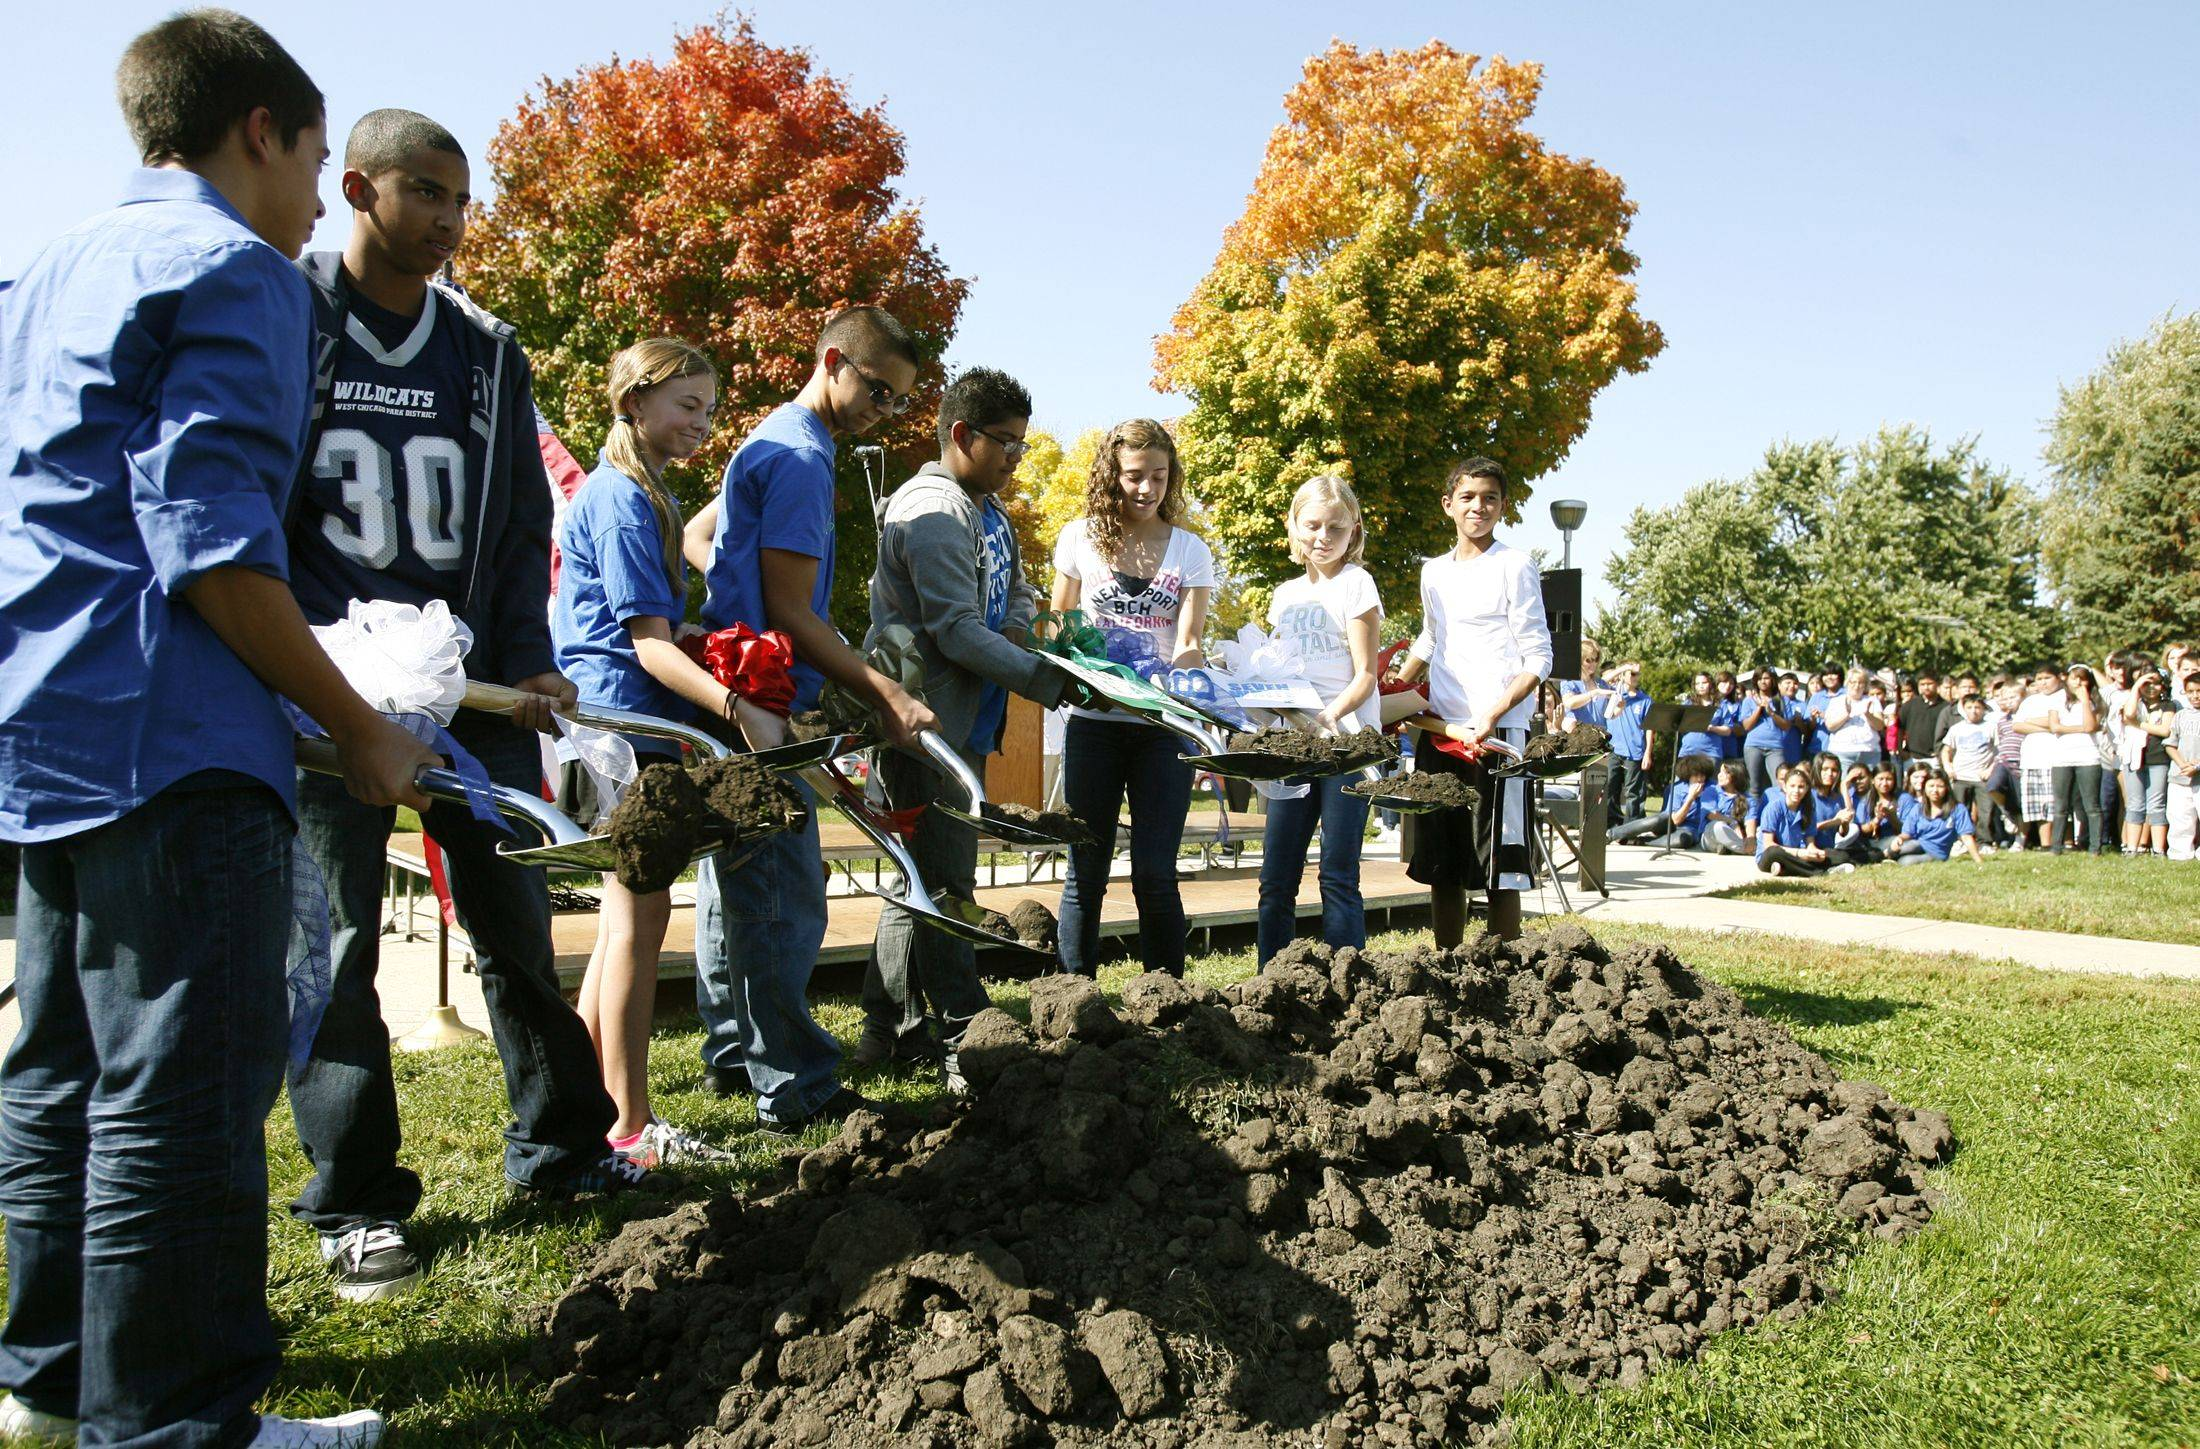 Students participate in a groundbreaking celebration for the West Chicago Middle School expansion. Jonathon Valdivia, Mikey Bibbs, Kendra Whelan, Tony Martin, Eric Santana, Lauren Long, Jenna Palka and Tai Bibbs gather dirt on their ceremonial shovels.